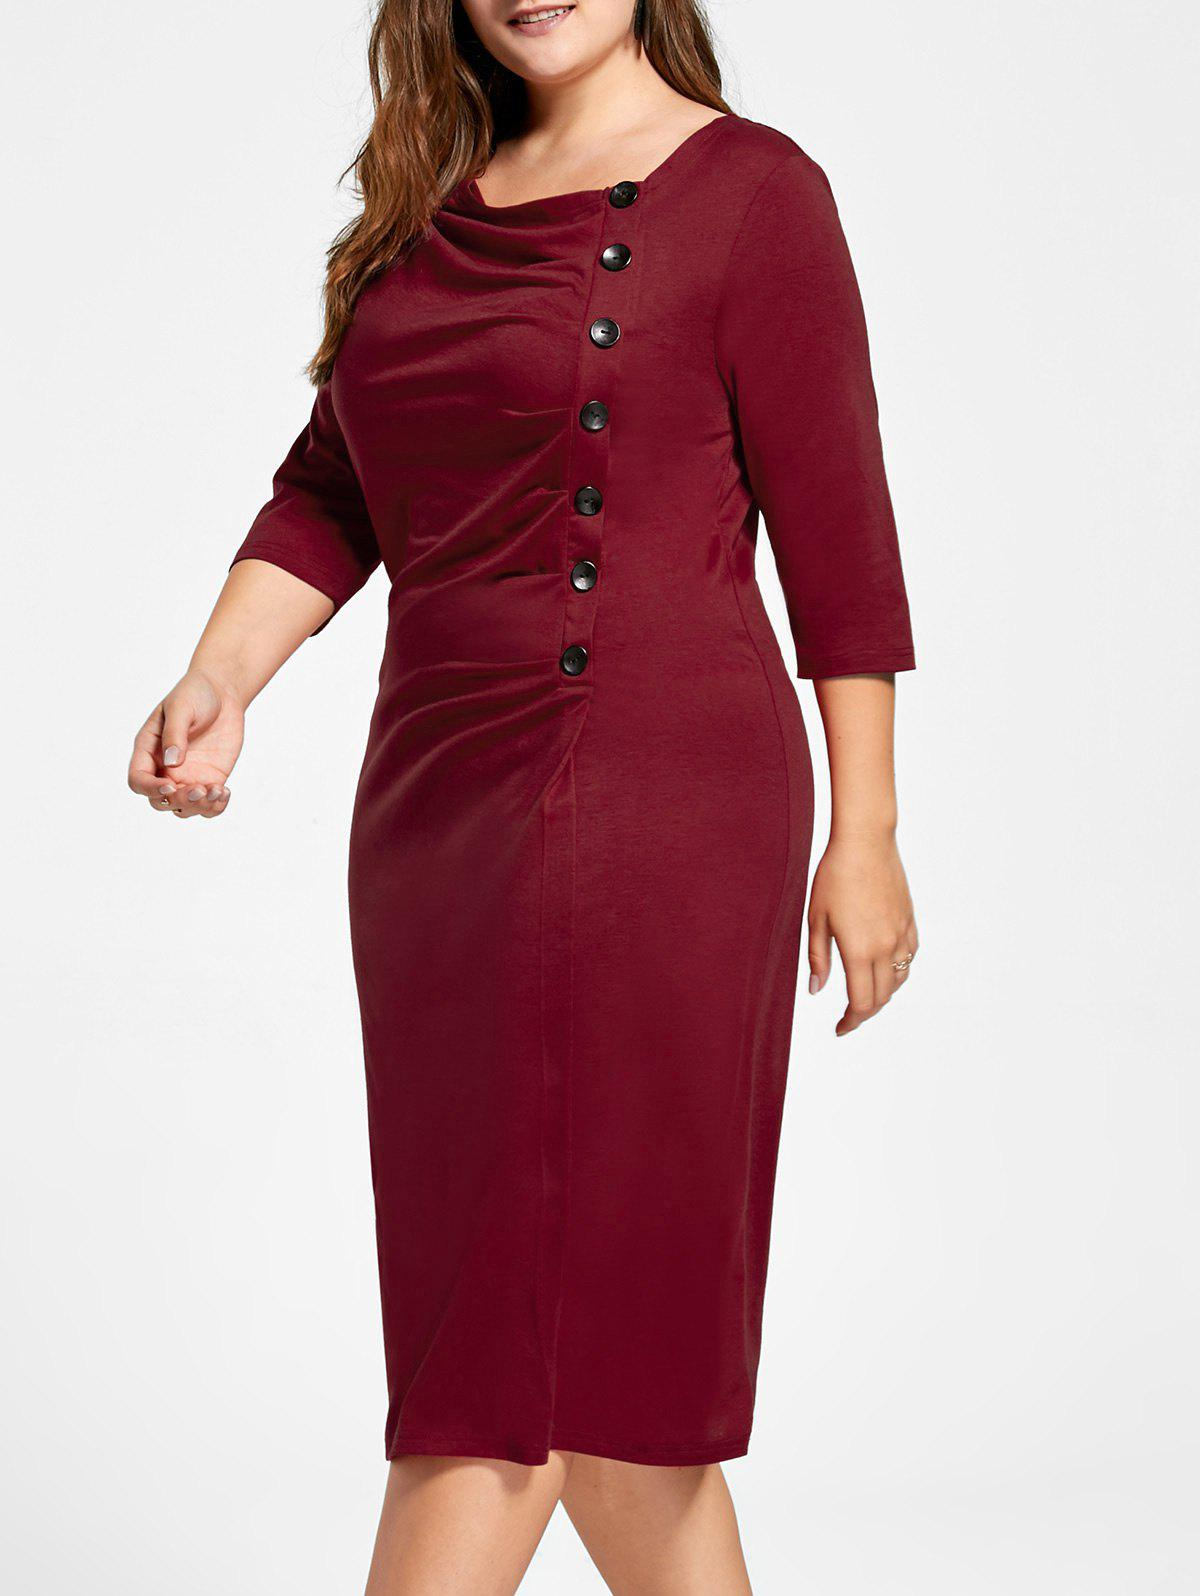 Ruched Plus Size Knee Length Sheath Formal DressWOMEN<br><br>Size: 4XL; Color: RED; Style: Cute; Material: Polyester,Spandex; Silhouette: Sheath; Dresses Length: Knee-Length; Neckline: Skew Collar; Sleeve Length: 3/4 Length Sleeves; Pattern Type: Solid; With Belt: No; Season: Fall,Spring; Weight: 0.3600kg; Package Contents: 1 x Dress;